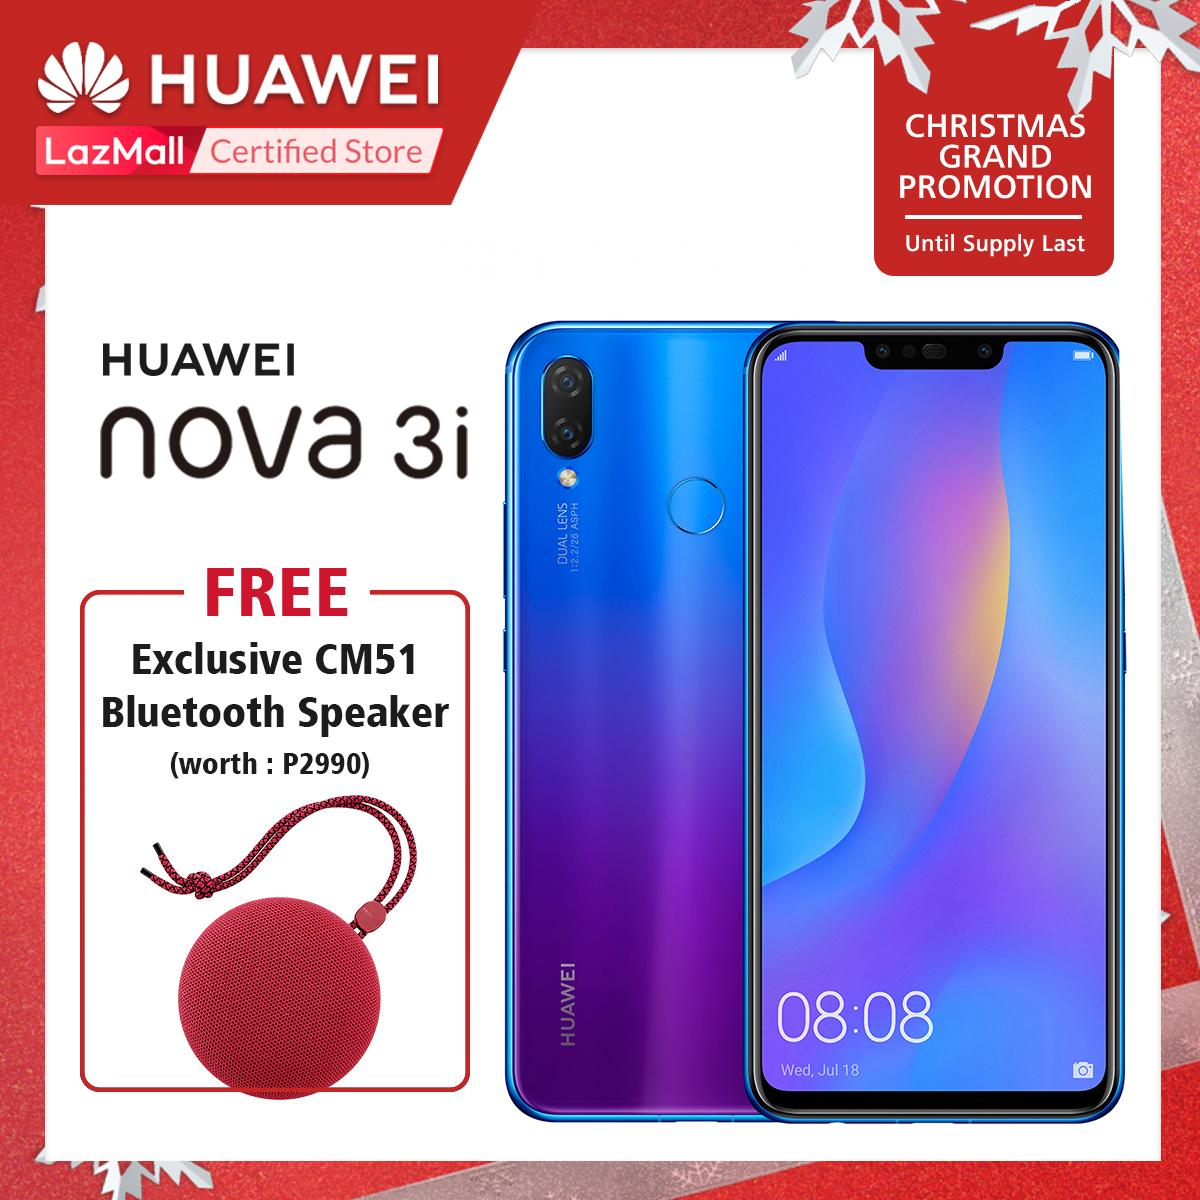 Huawei Philippines Phone For Sale Prices Reviews Lazada Skun Pcb Set 7500 5 Nova 3i 128gb 4gb With Free Cm51 Bluetooth Speaker